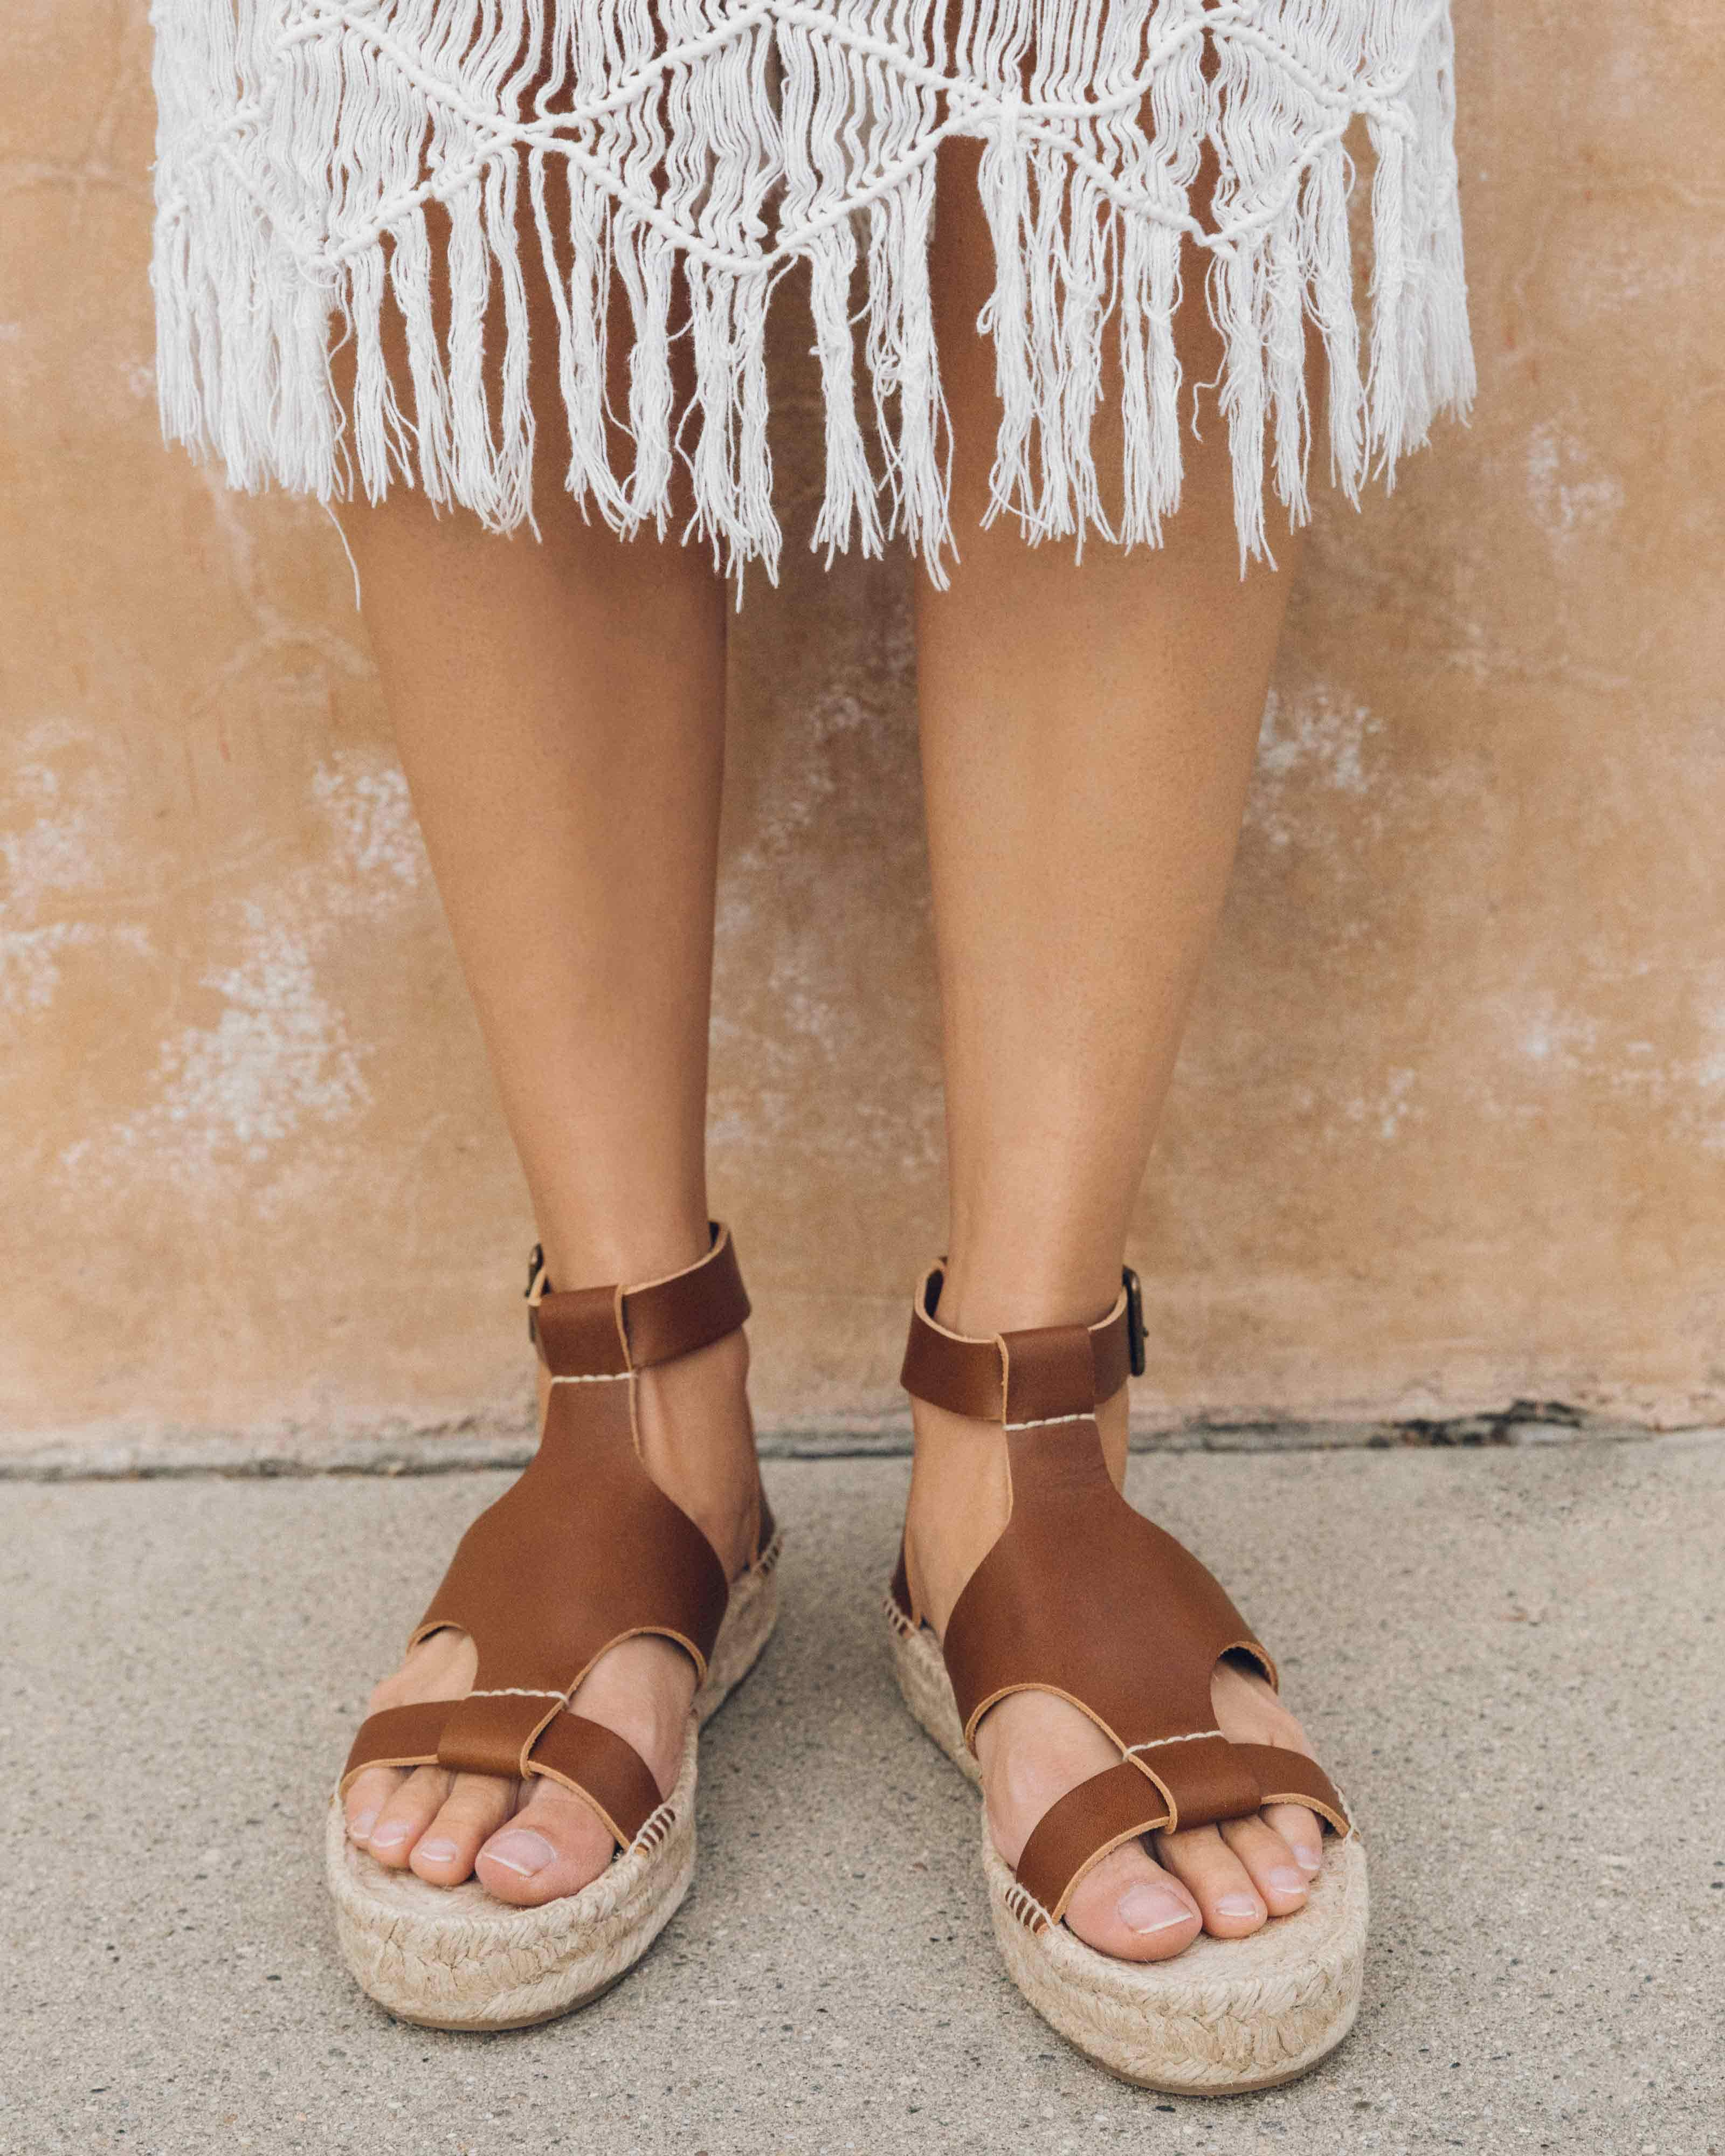 473b3517d9a7 Lyst - Soludos Banded Shield Sandal in Brown